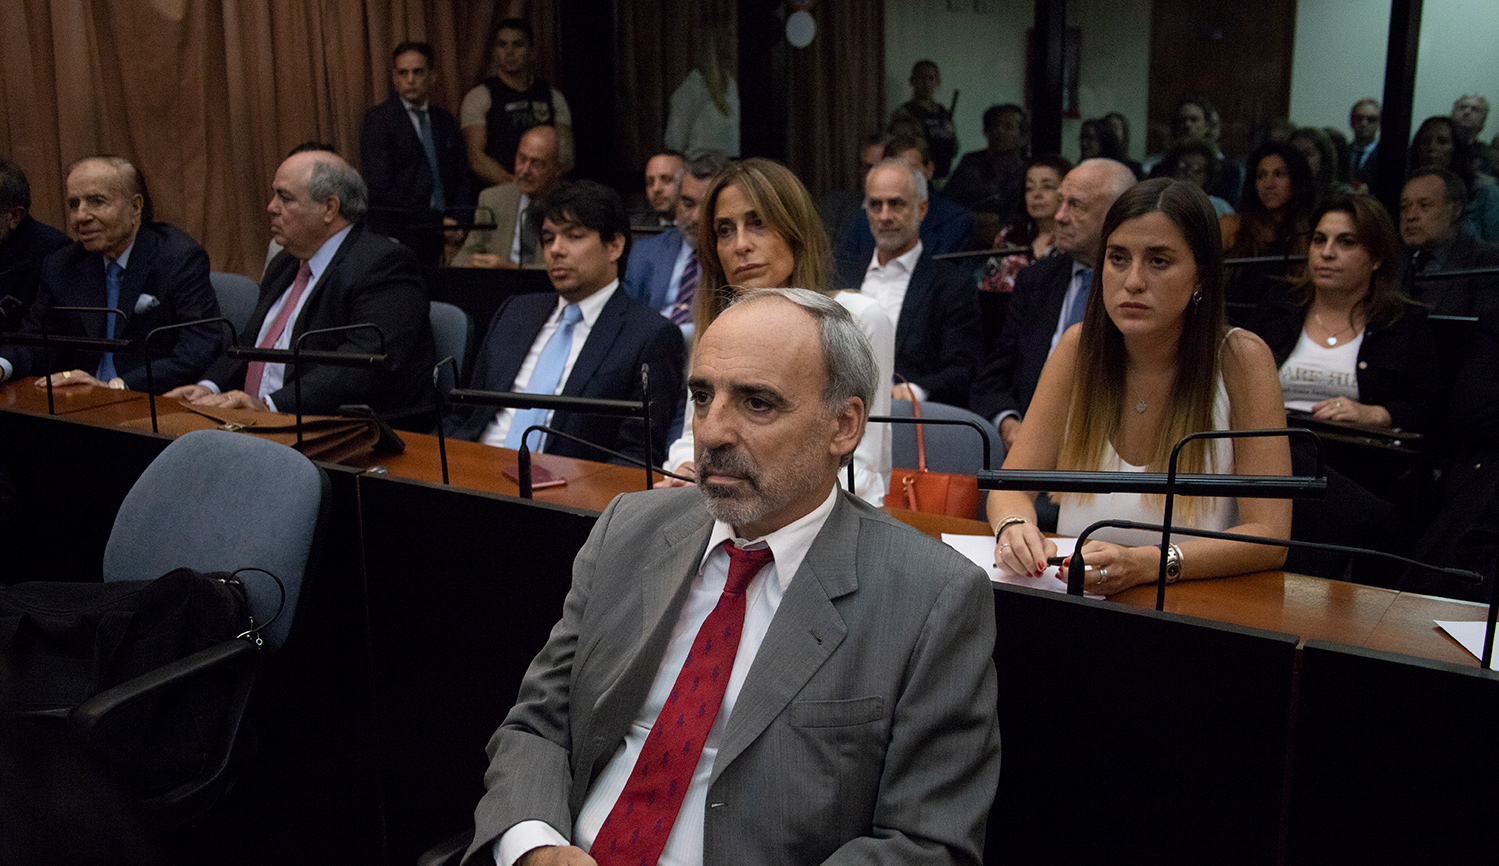 Former magistrate Juan José Galeano attends as defendant on August 16, 2015: the first day of hearings into the 1994 AMIA bombing in Buenos Aires. Matías Baglietto/NurPhoto via Getty Images.